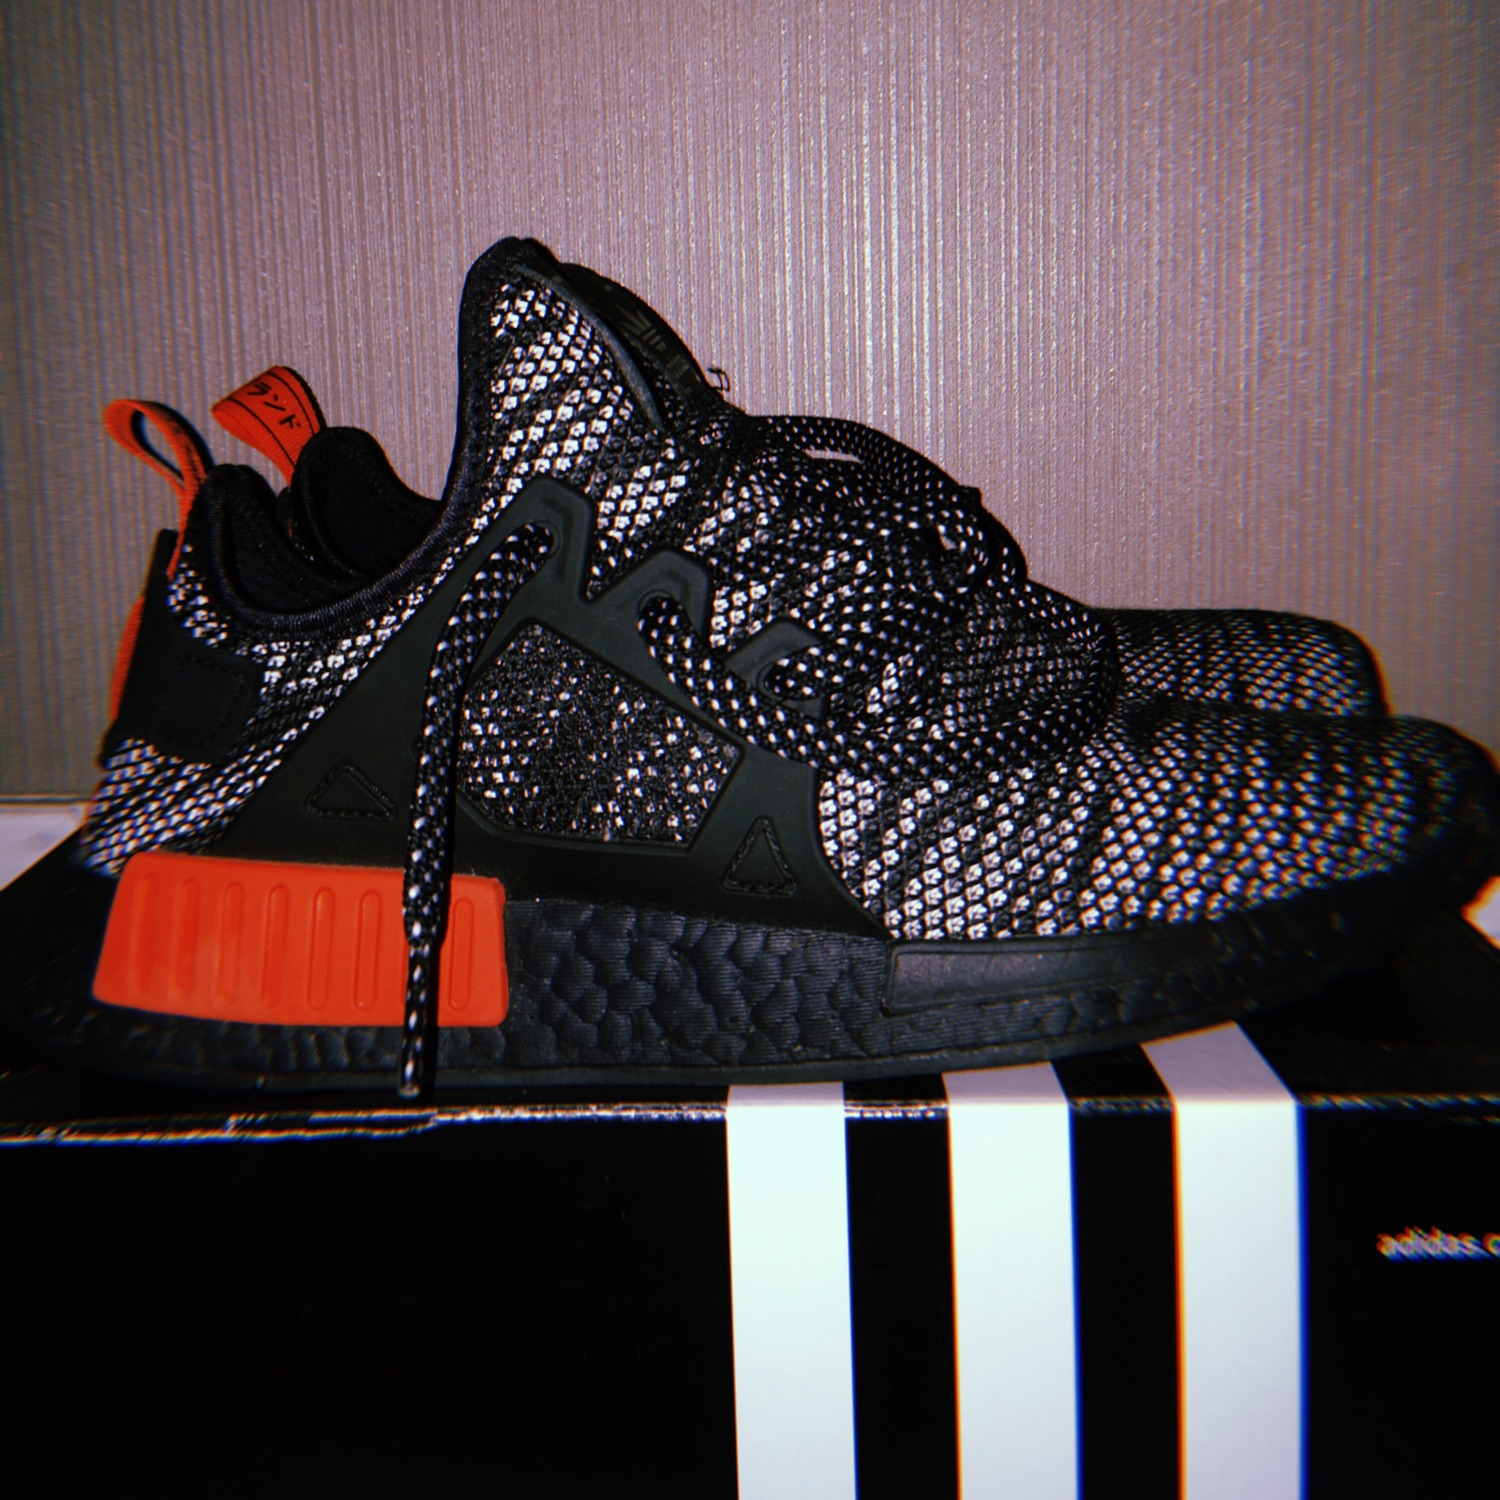 brand new d15a3 c82c4 Need Gone Adidas Nmd Xr1 Primeknit Bred